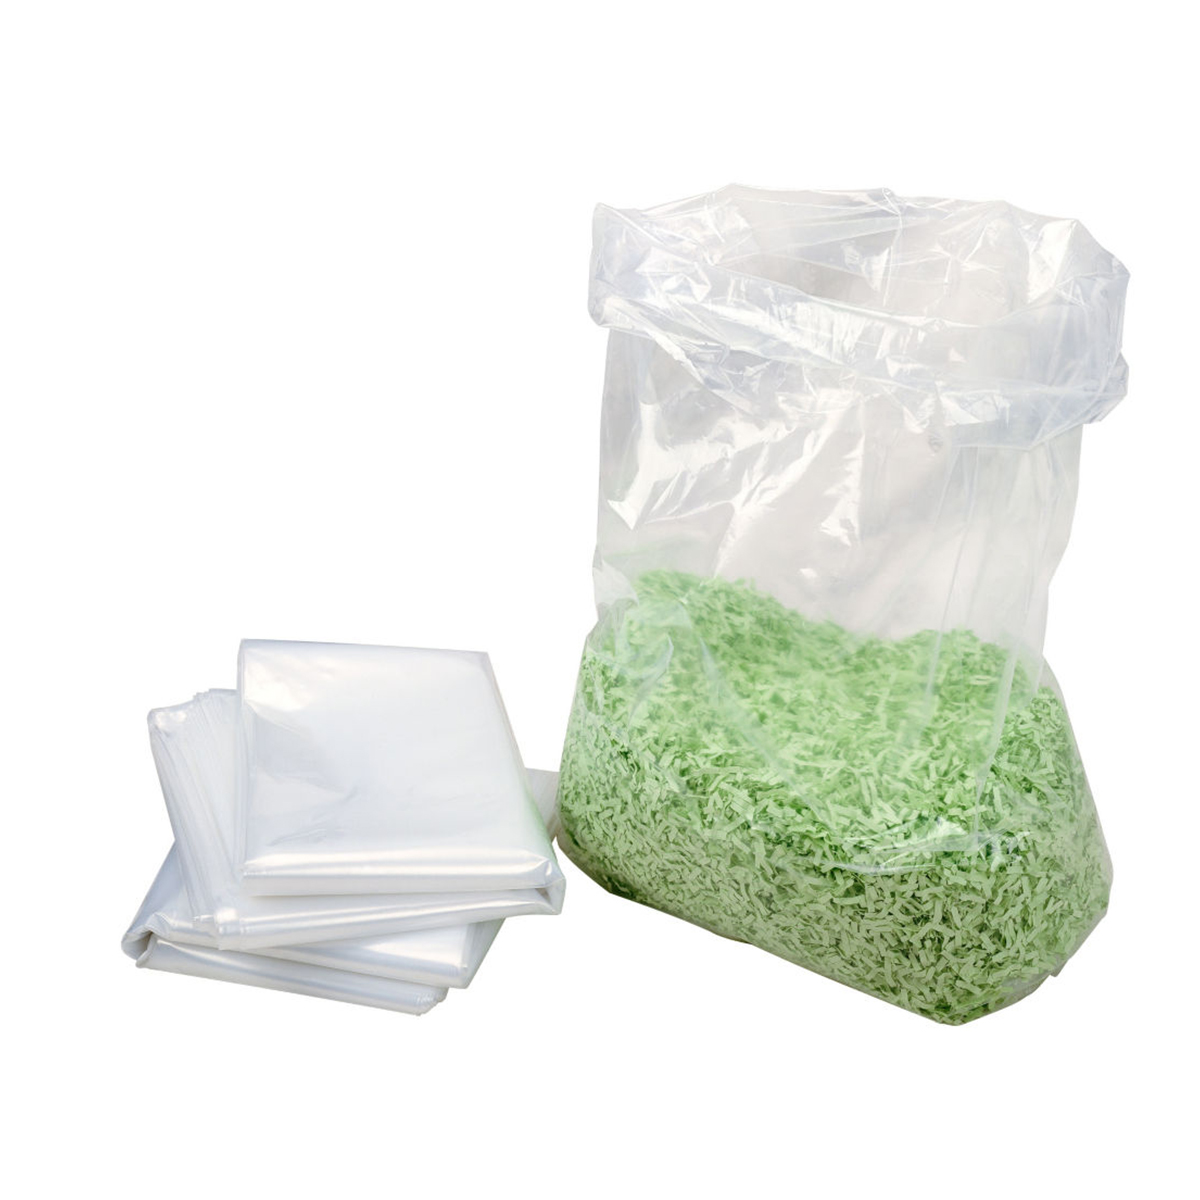 HSM Large Clear Shredder Bags 25pk